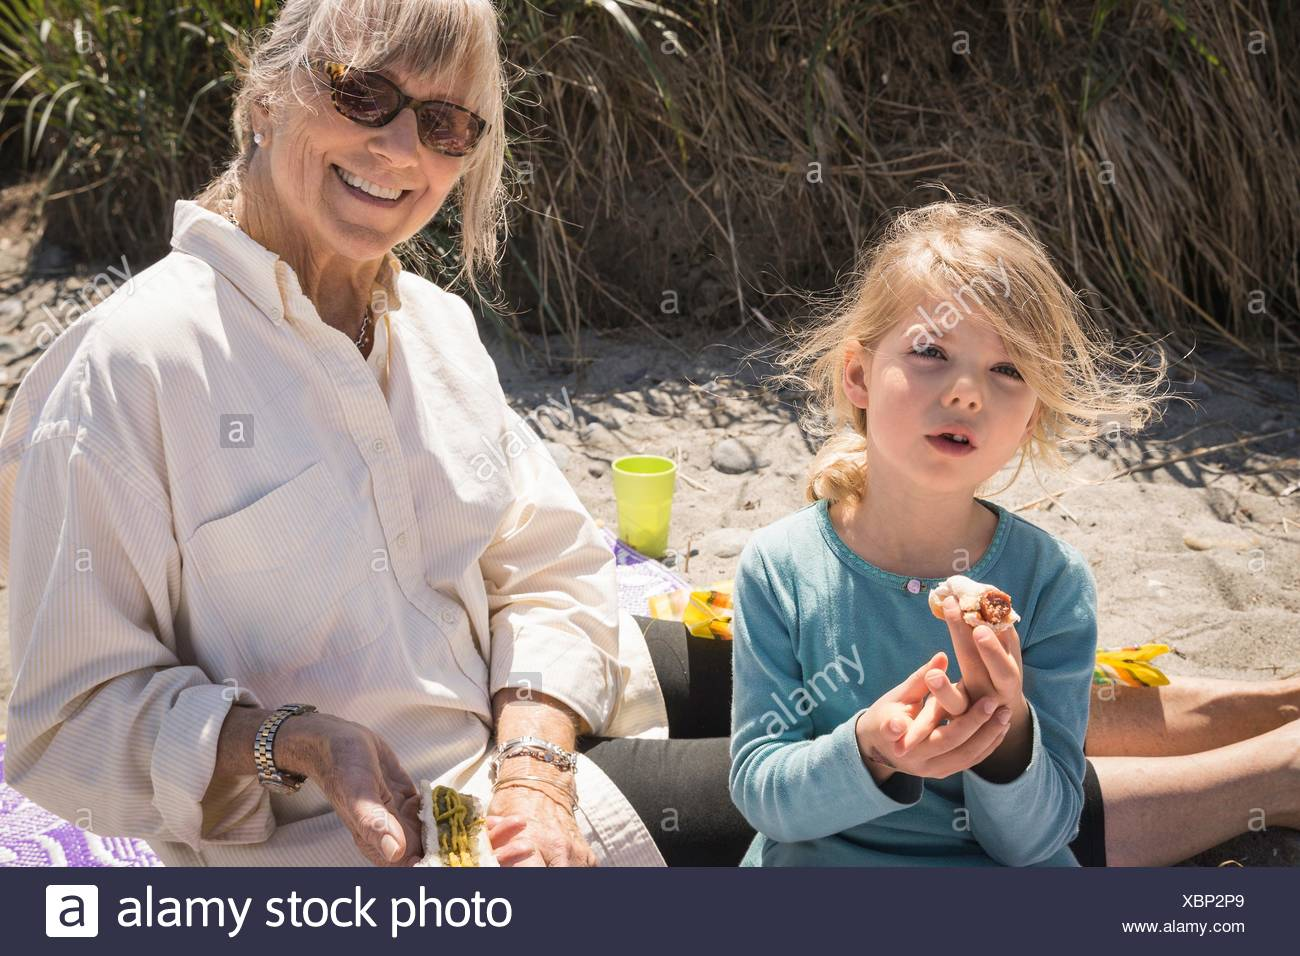 Grandmother and granddaughter on beach with picnic - Stock Image